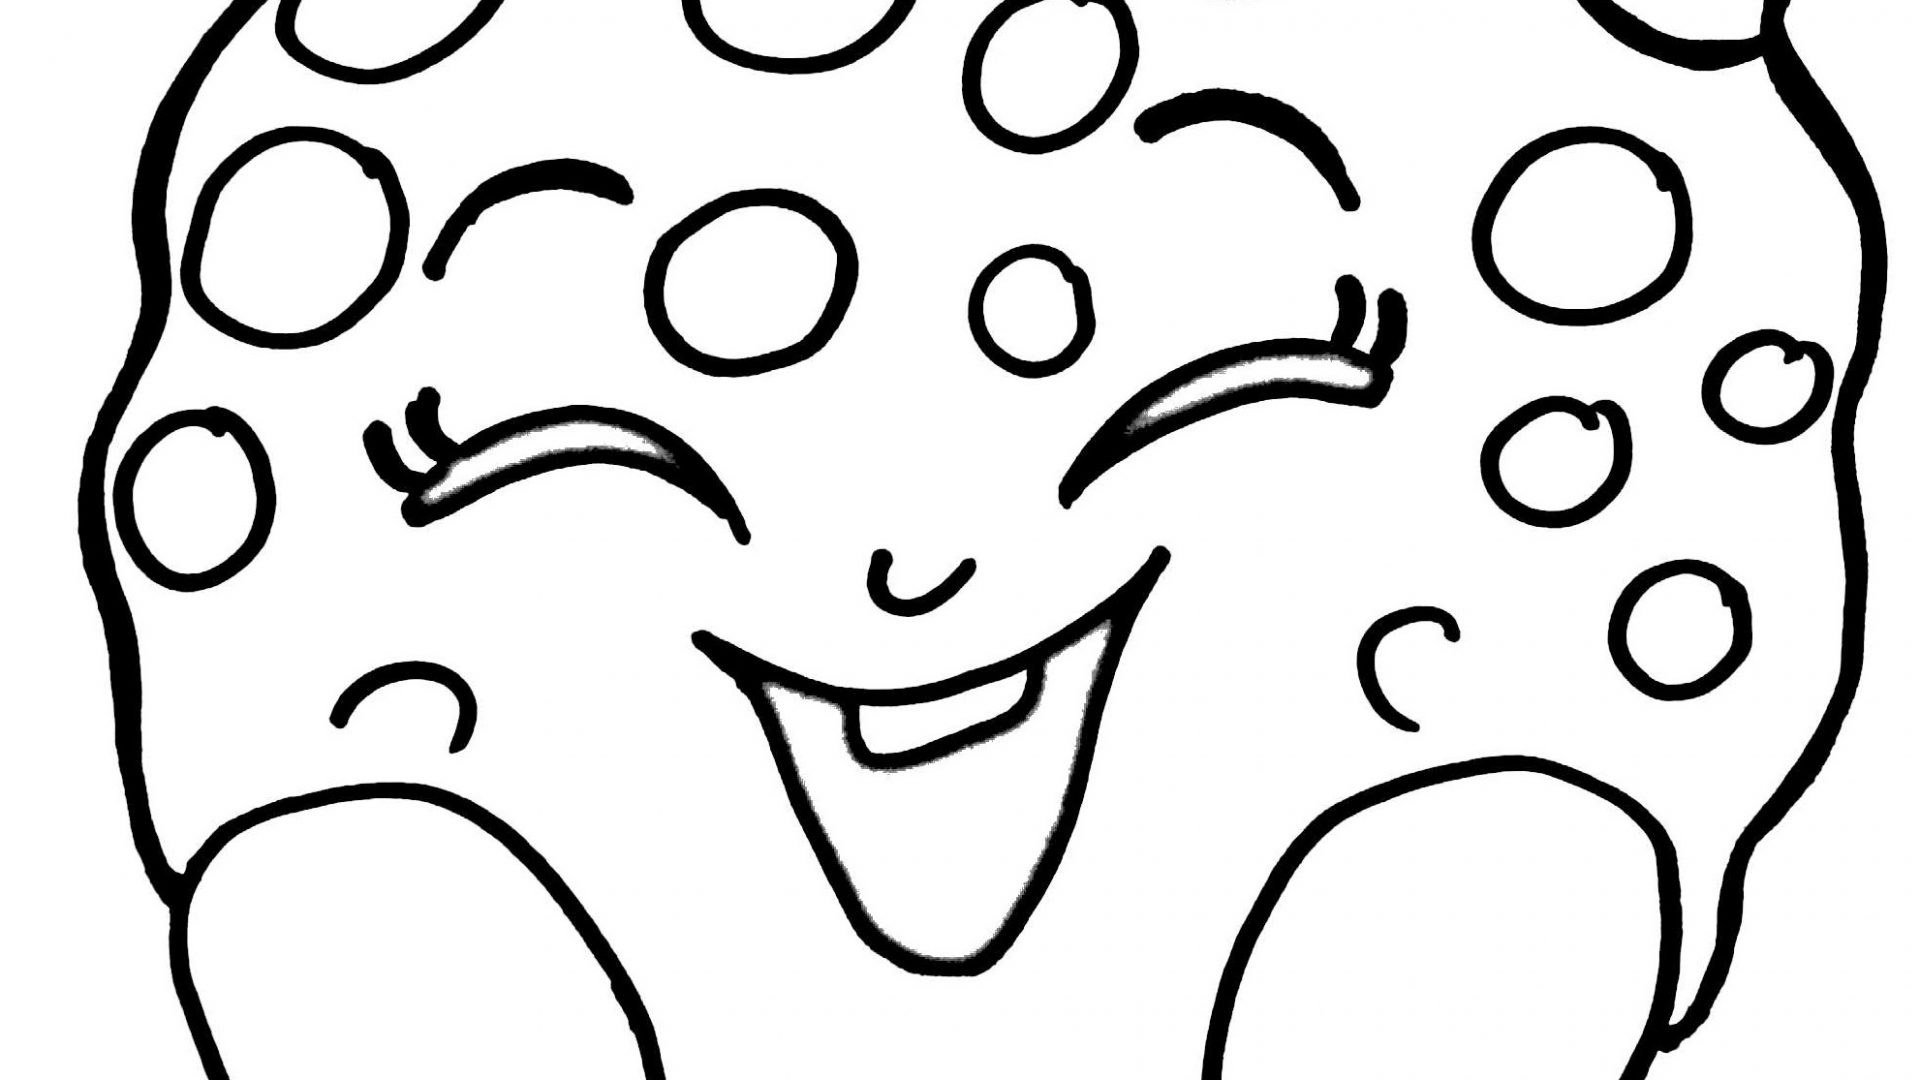 girl scout cookies coloring pages 17 best images about girl scout coloring pages on pinterest cookies pages scout girl coloring